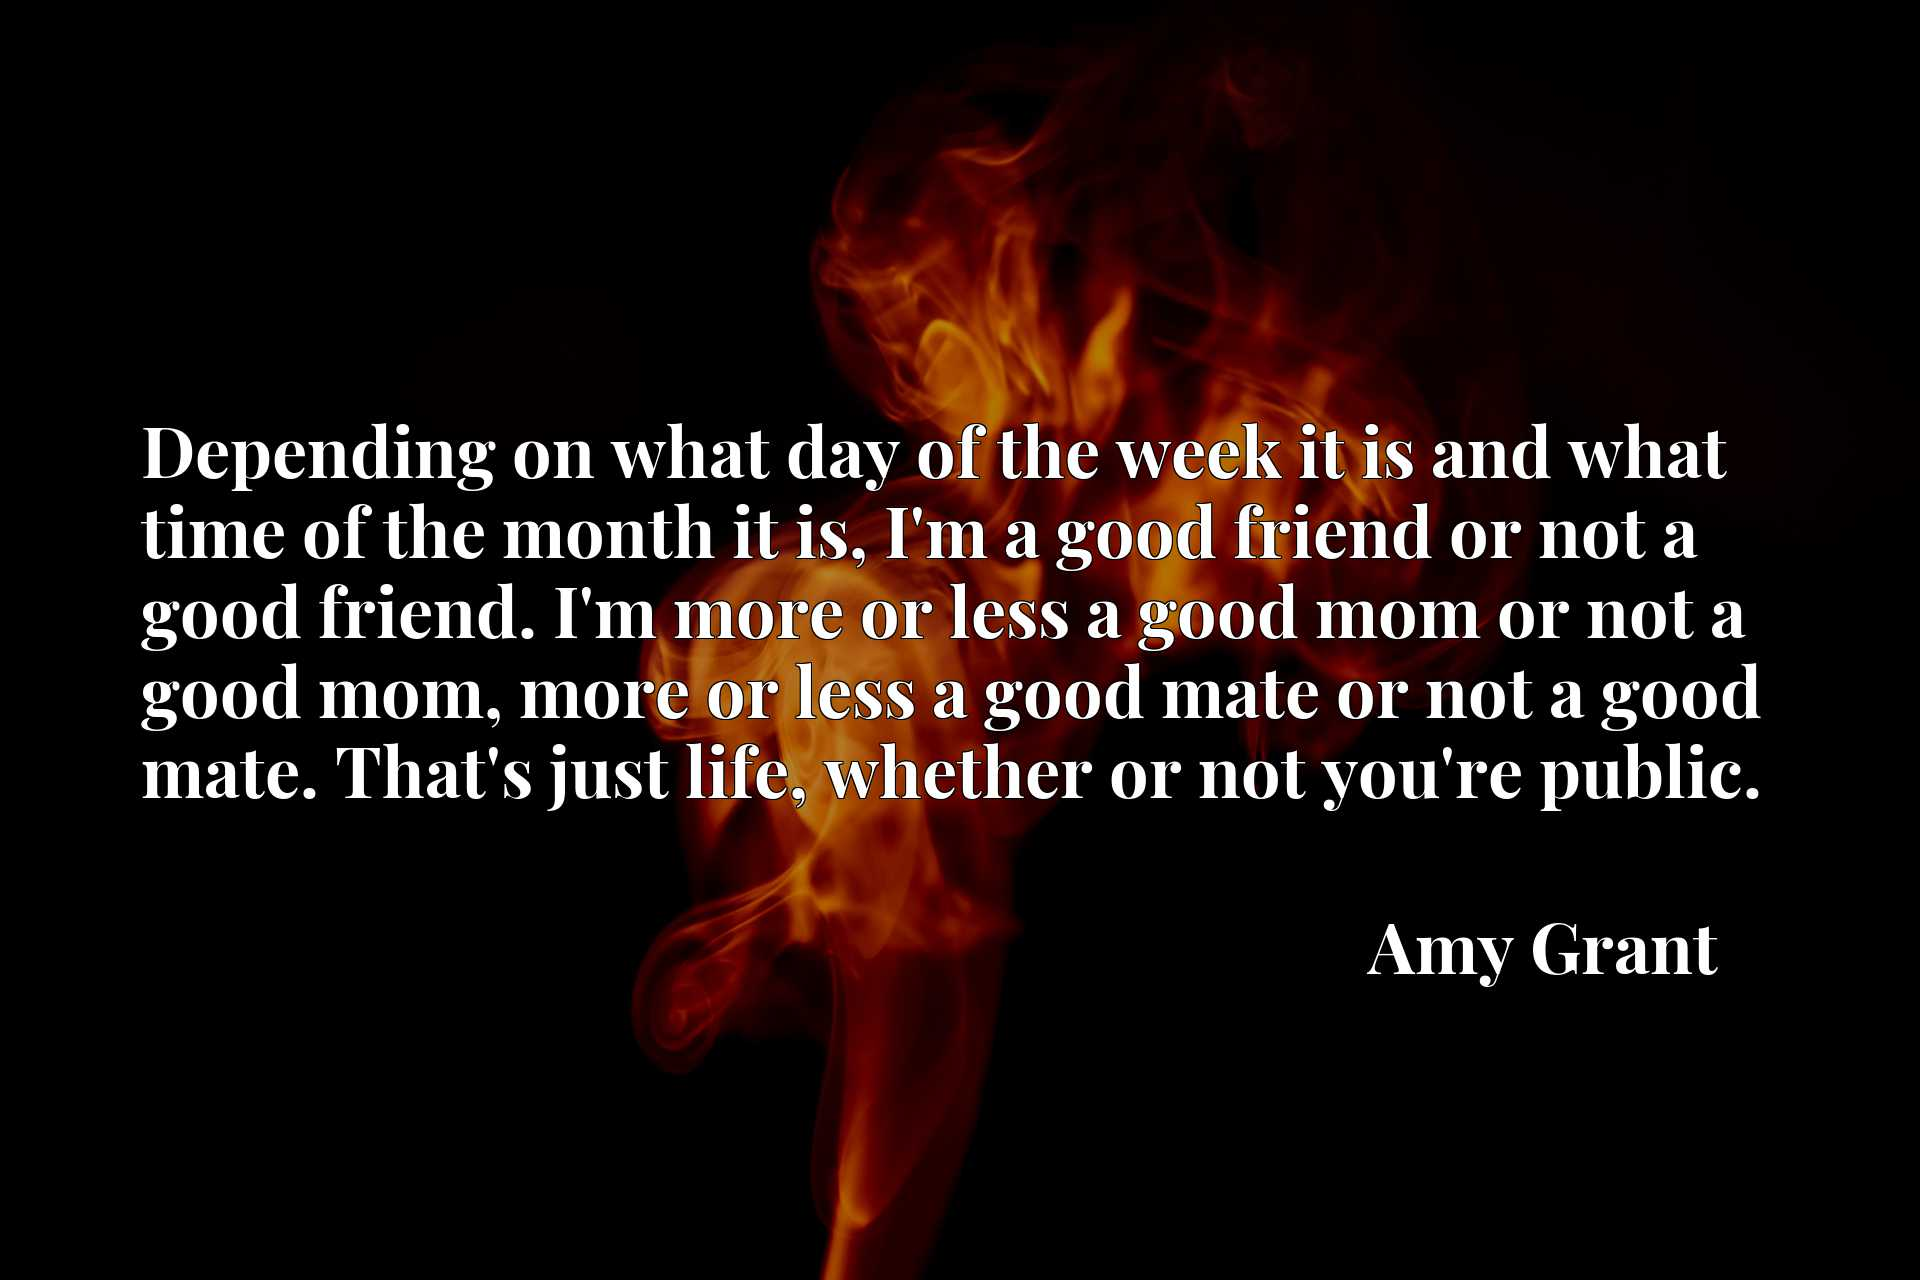 Depending on what day of the week it is and what time of the month it is, I'm a good friend or not a good friend. I'm more or less a good mom or not a good mom, more or less a good mate or not a good mate. That's just life, whether or not you're public.